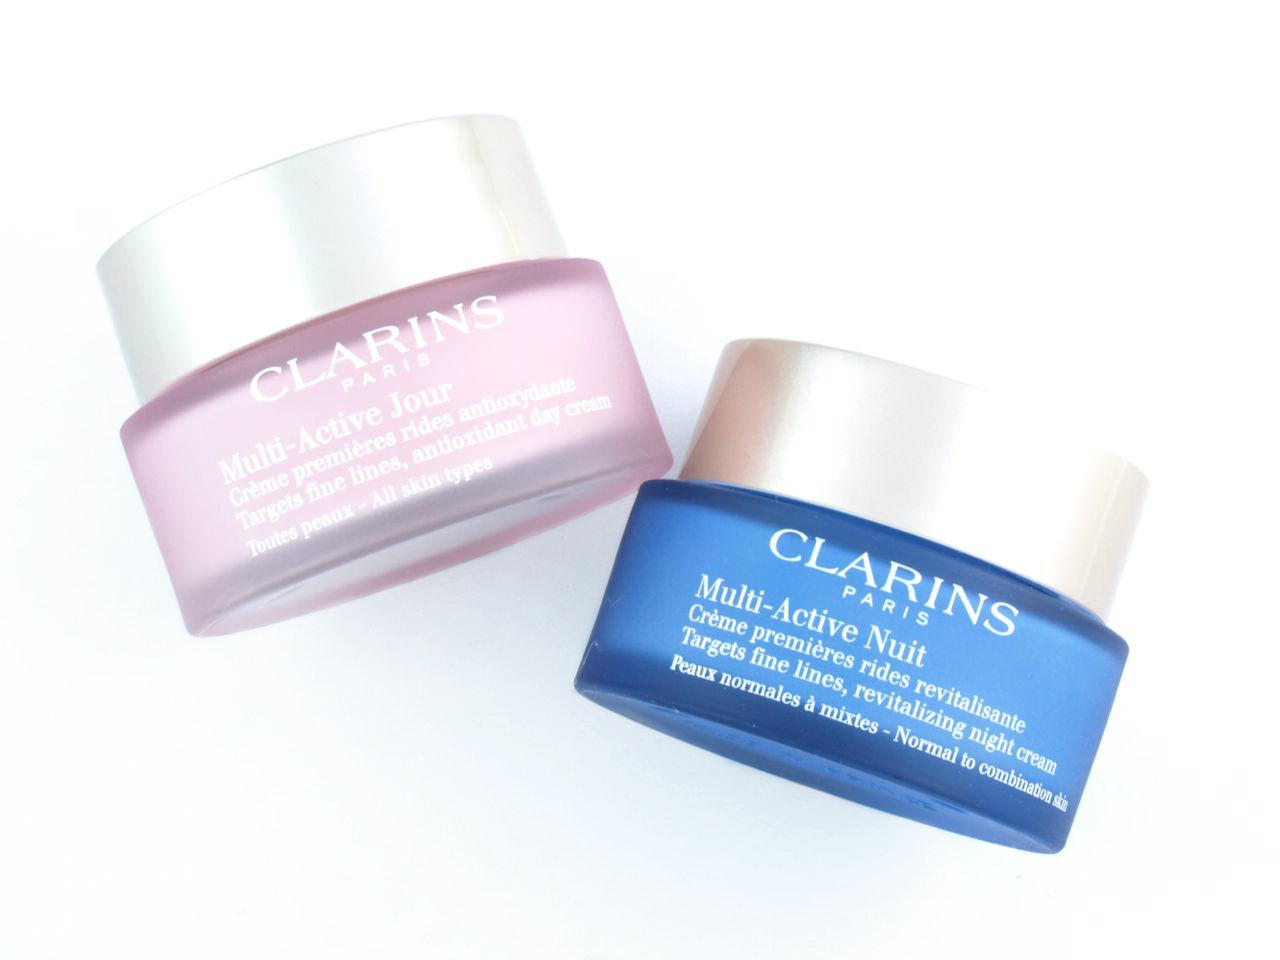 clarins mission perfection serum multi active day night creams review the happy sloths. Black Bedroom Furniture Sets. Home Design Ideas